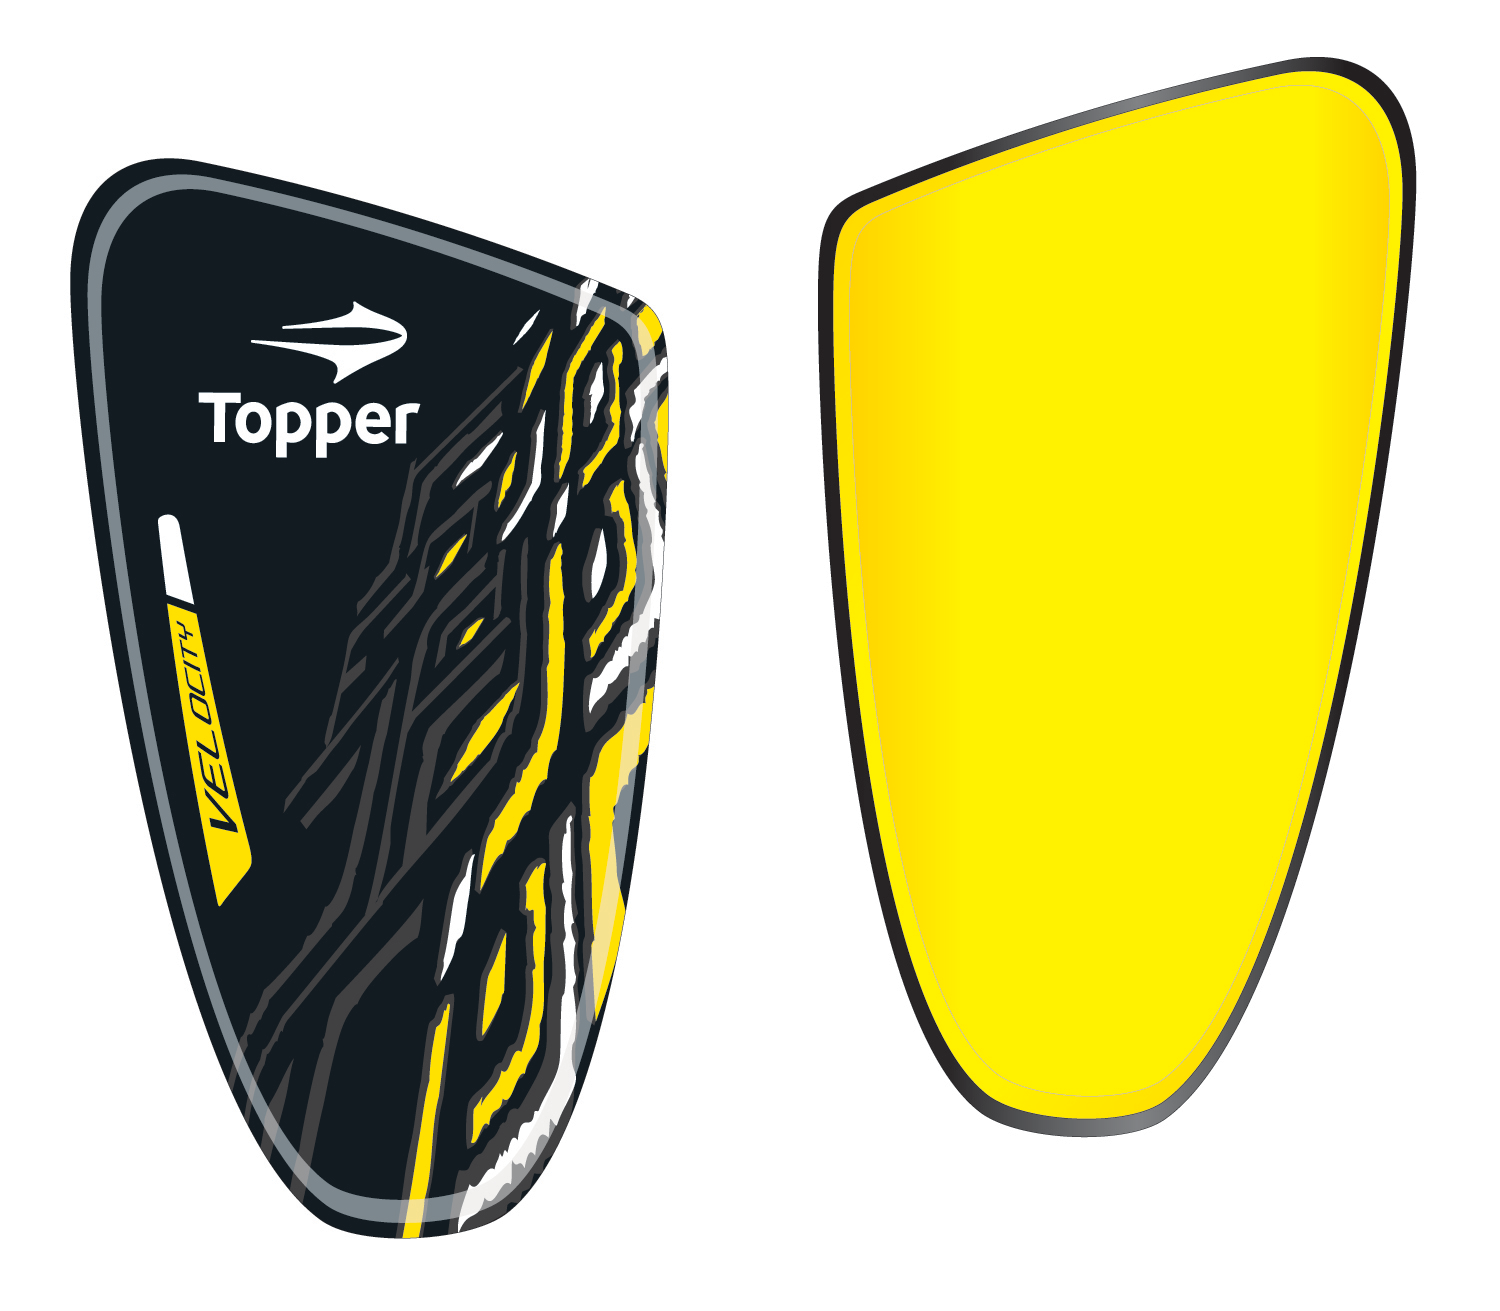 Caneleira Topper Velocity Ii Shin Guards Guard Topper